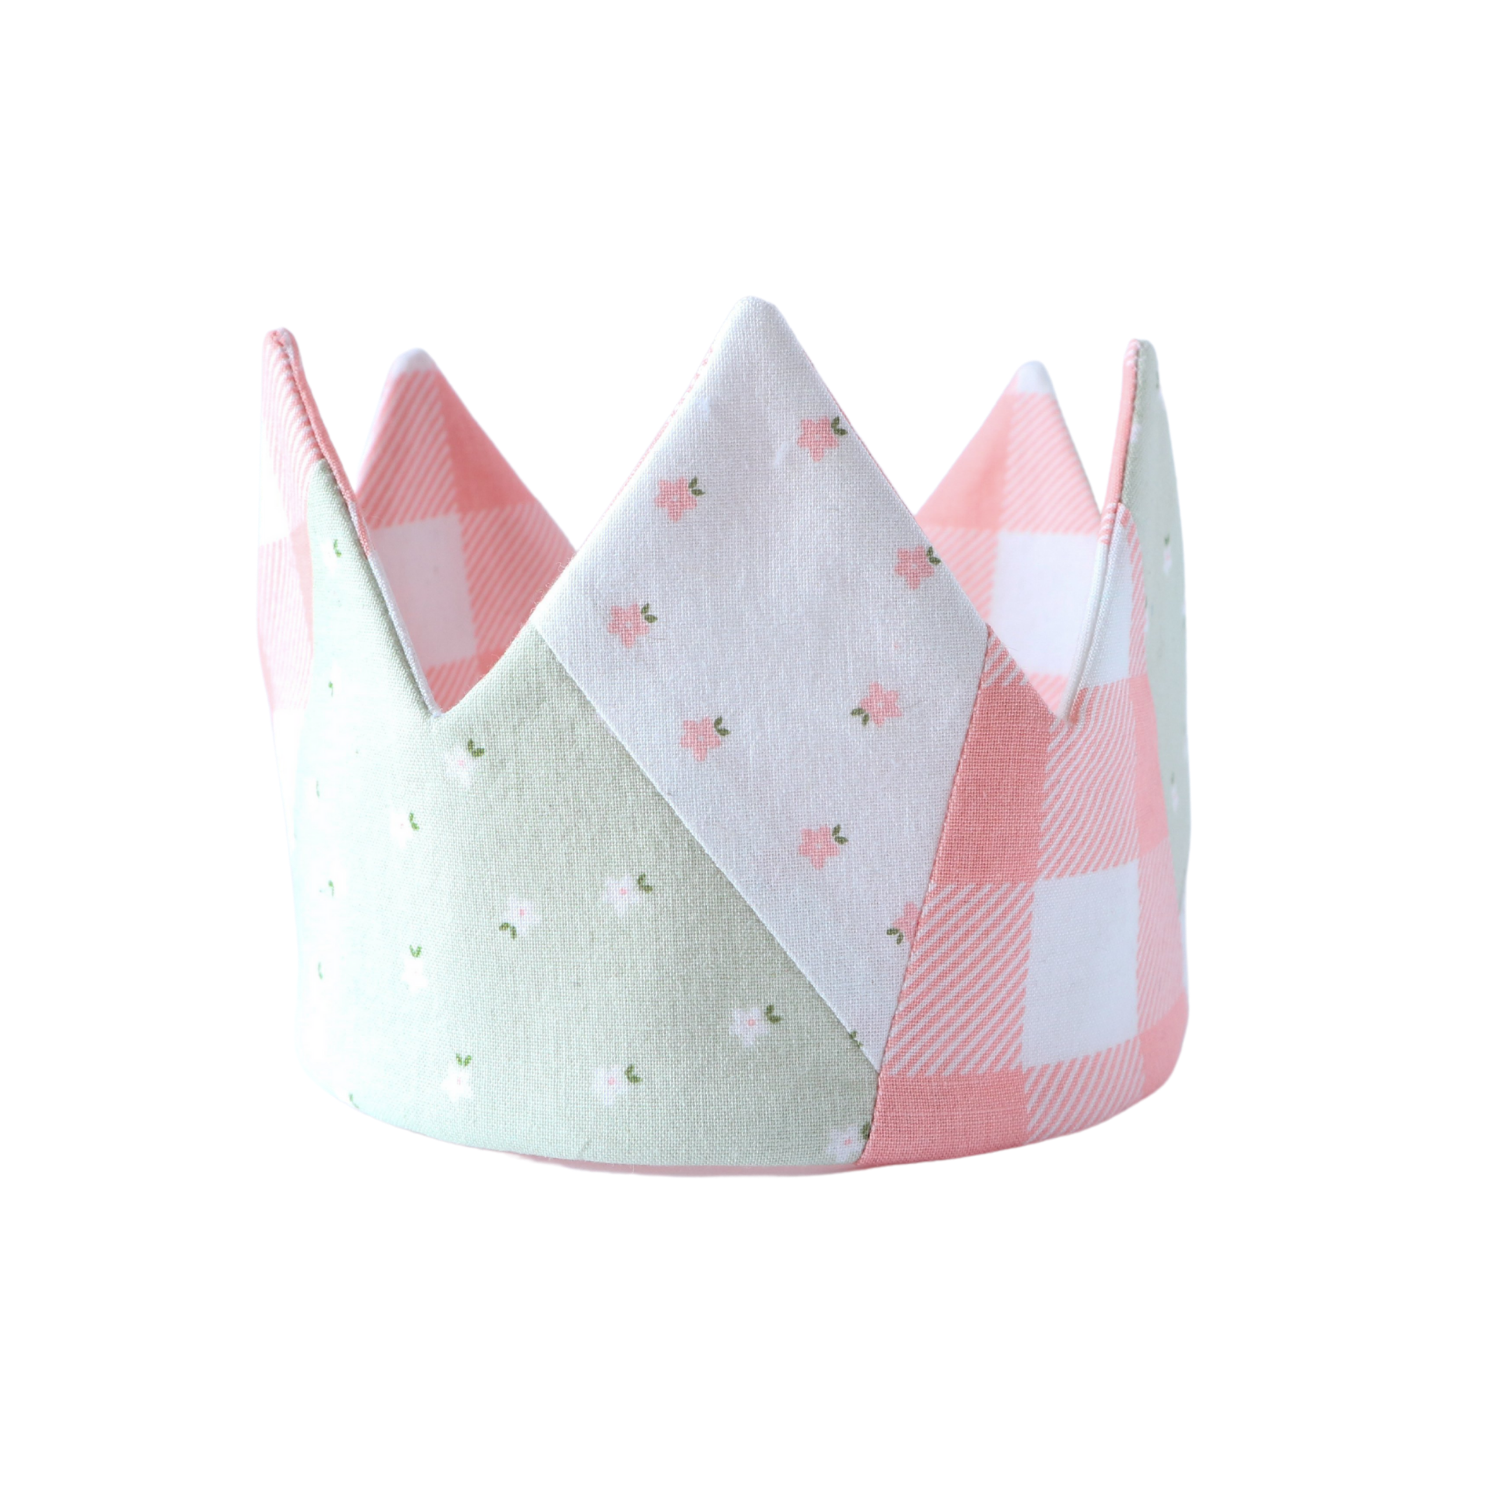 Quilted play crown for kids, pink gingham, green floral and white floral fabric